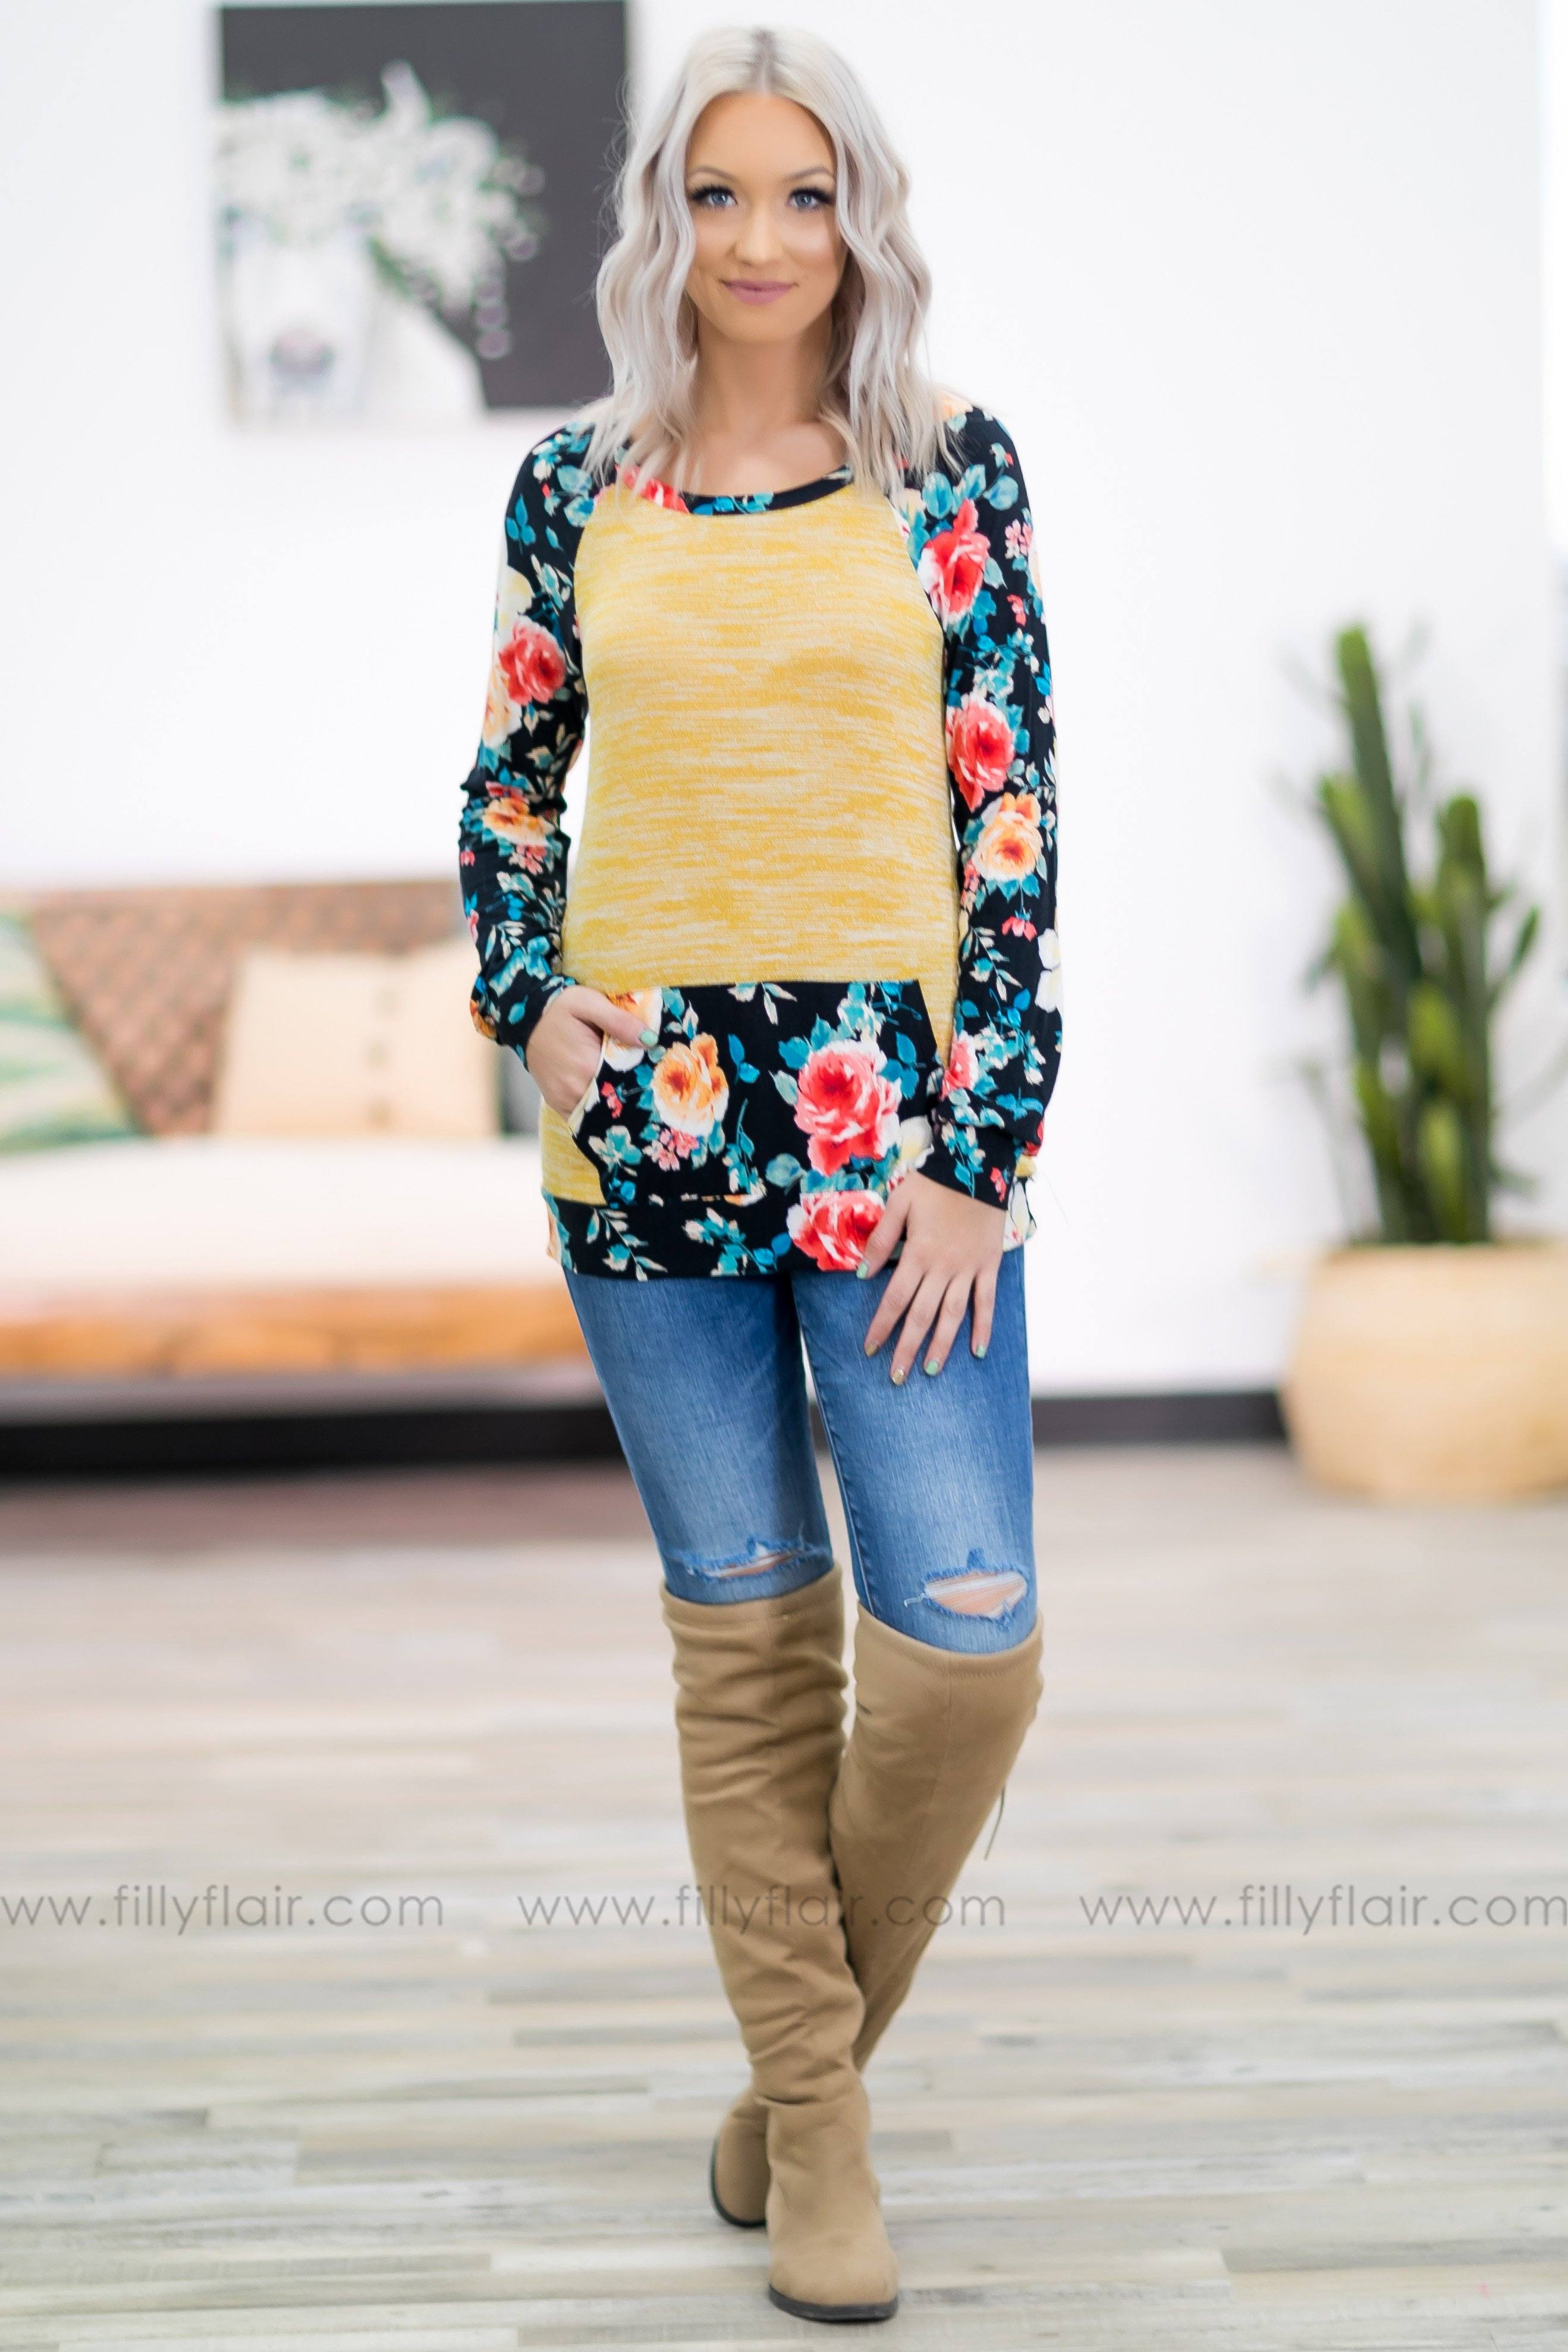 Seasons in the Sun Long Sleeve Floral Top in Mustard - Filly Flair